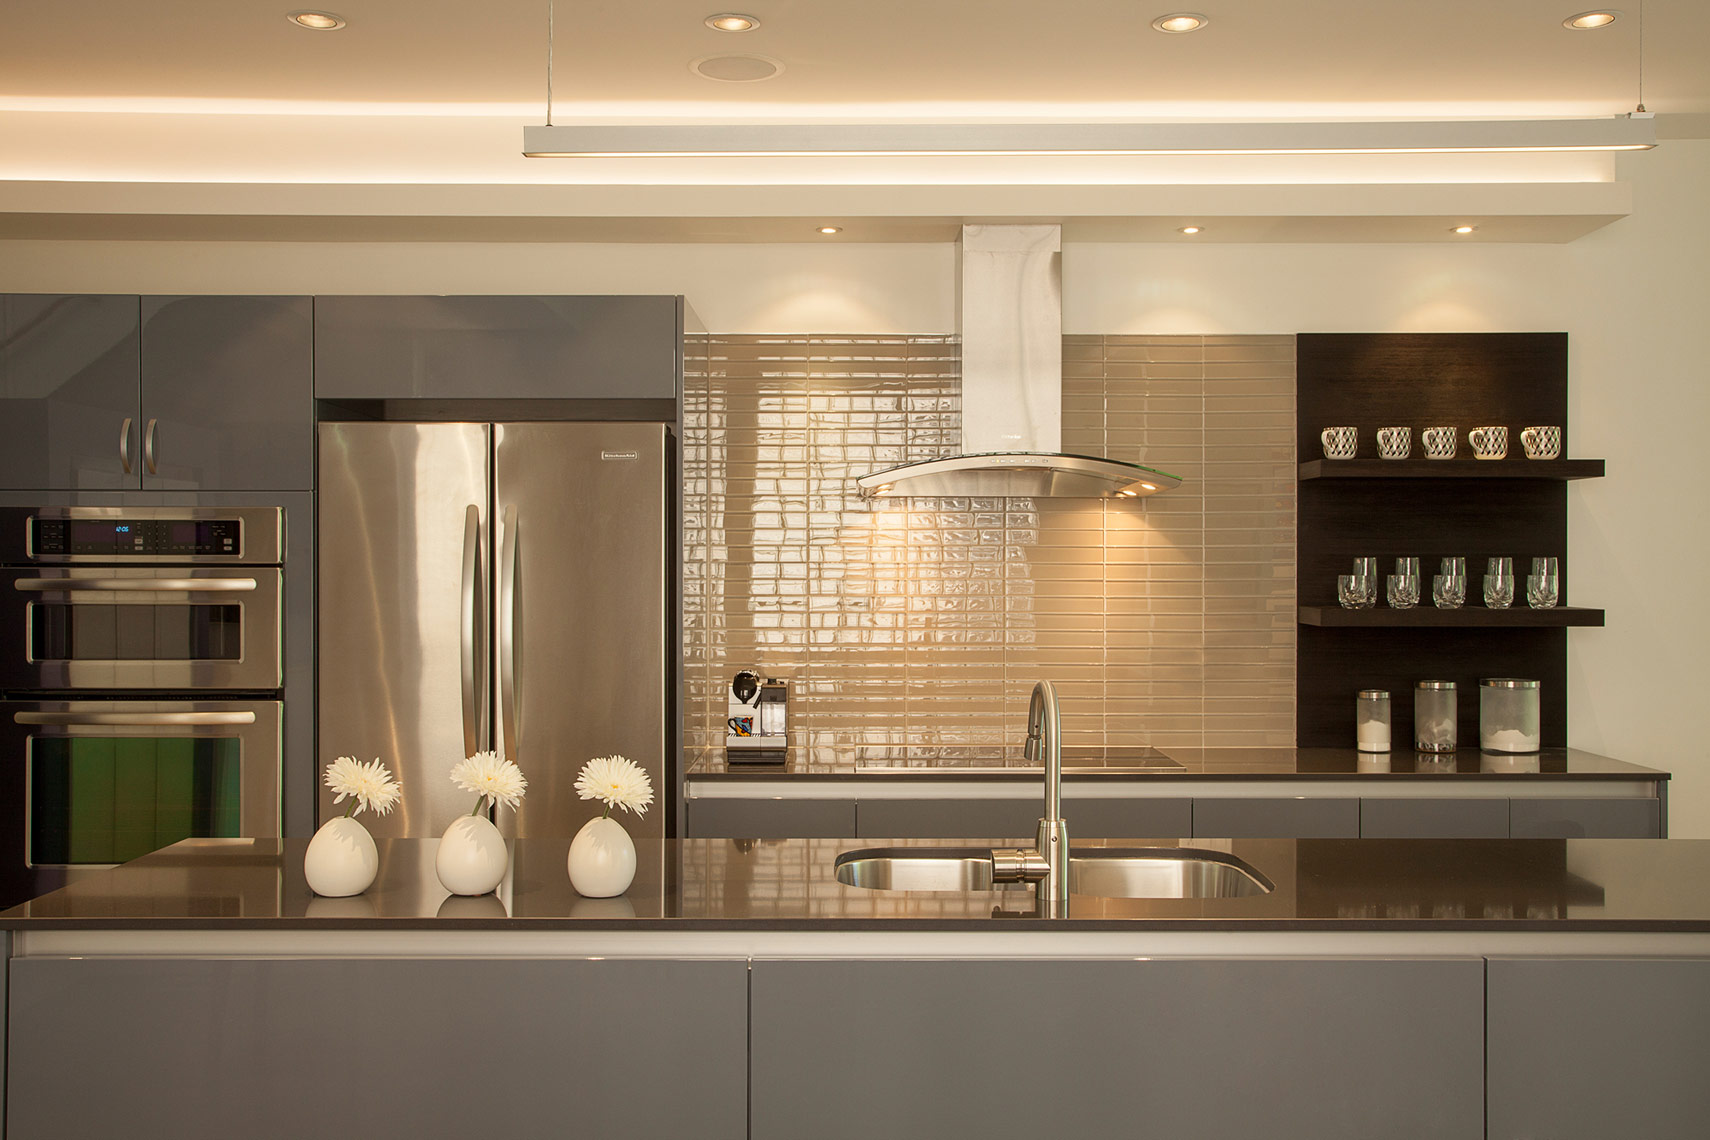 Residential-Interior-Kitchen-BLT